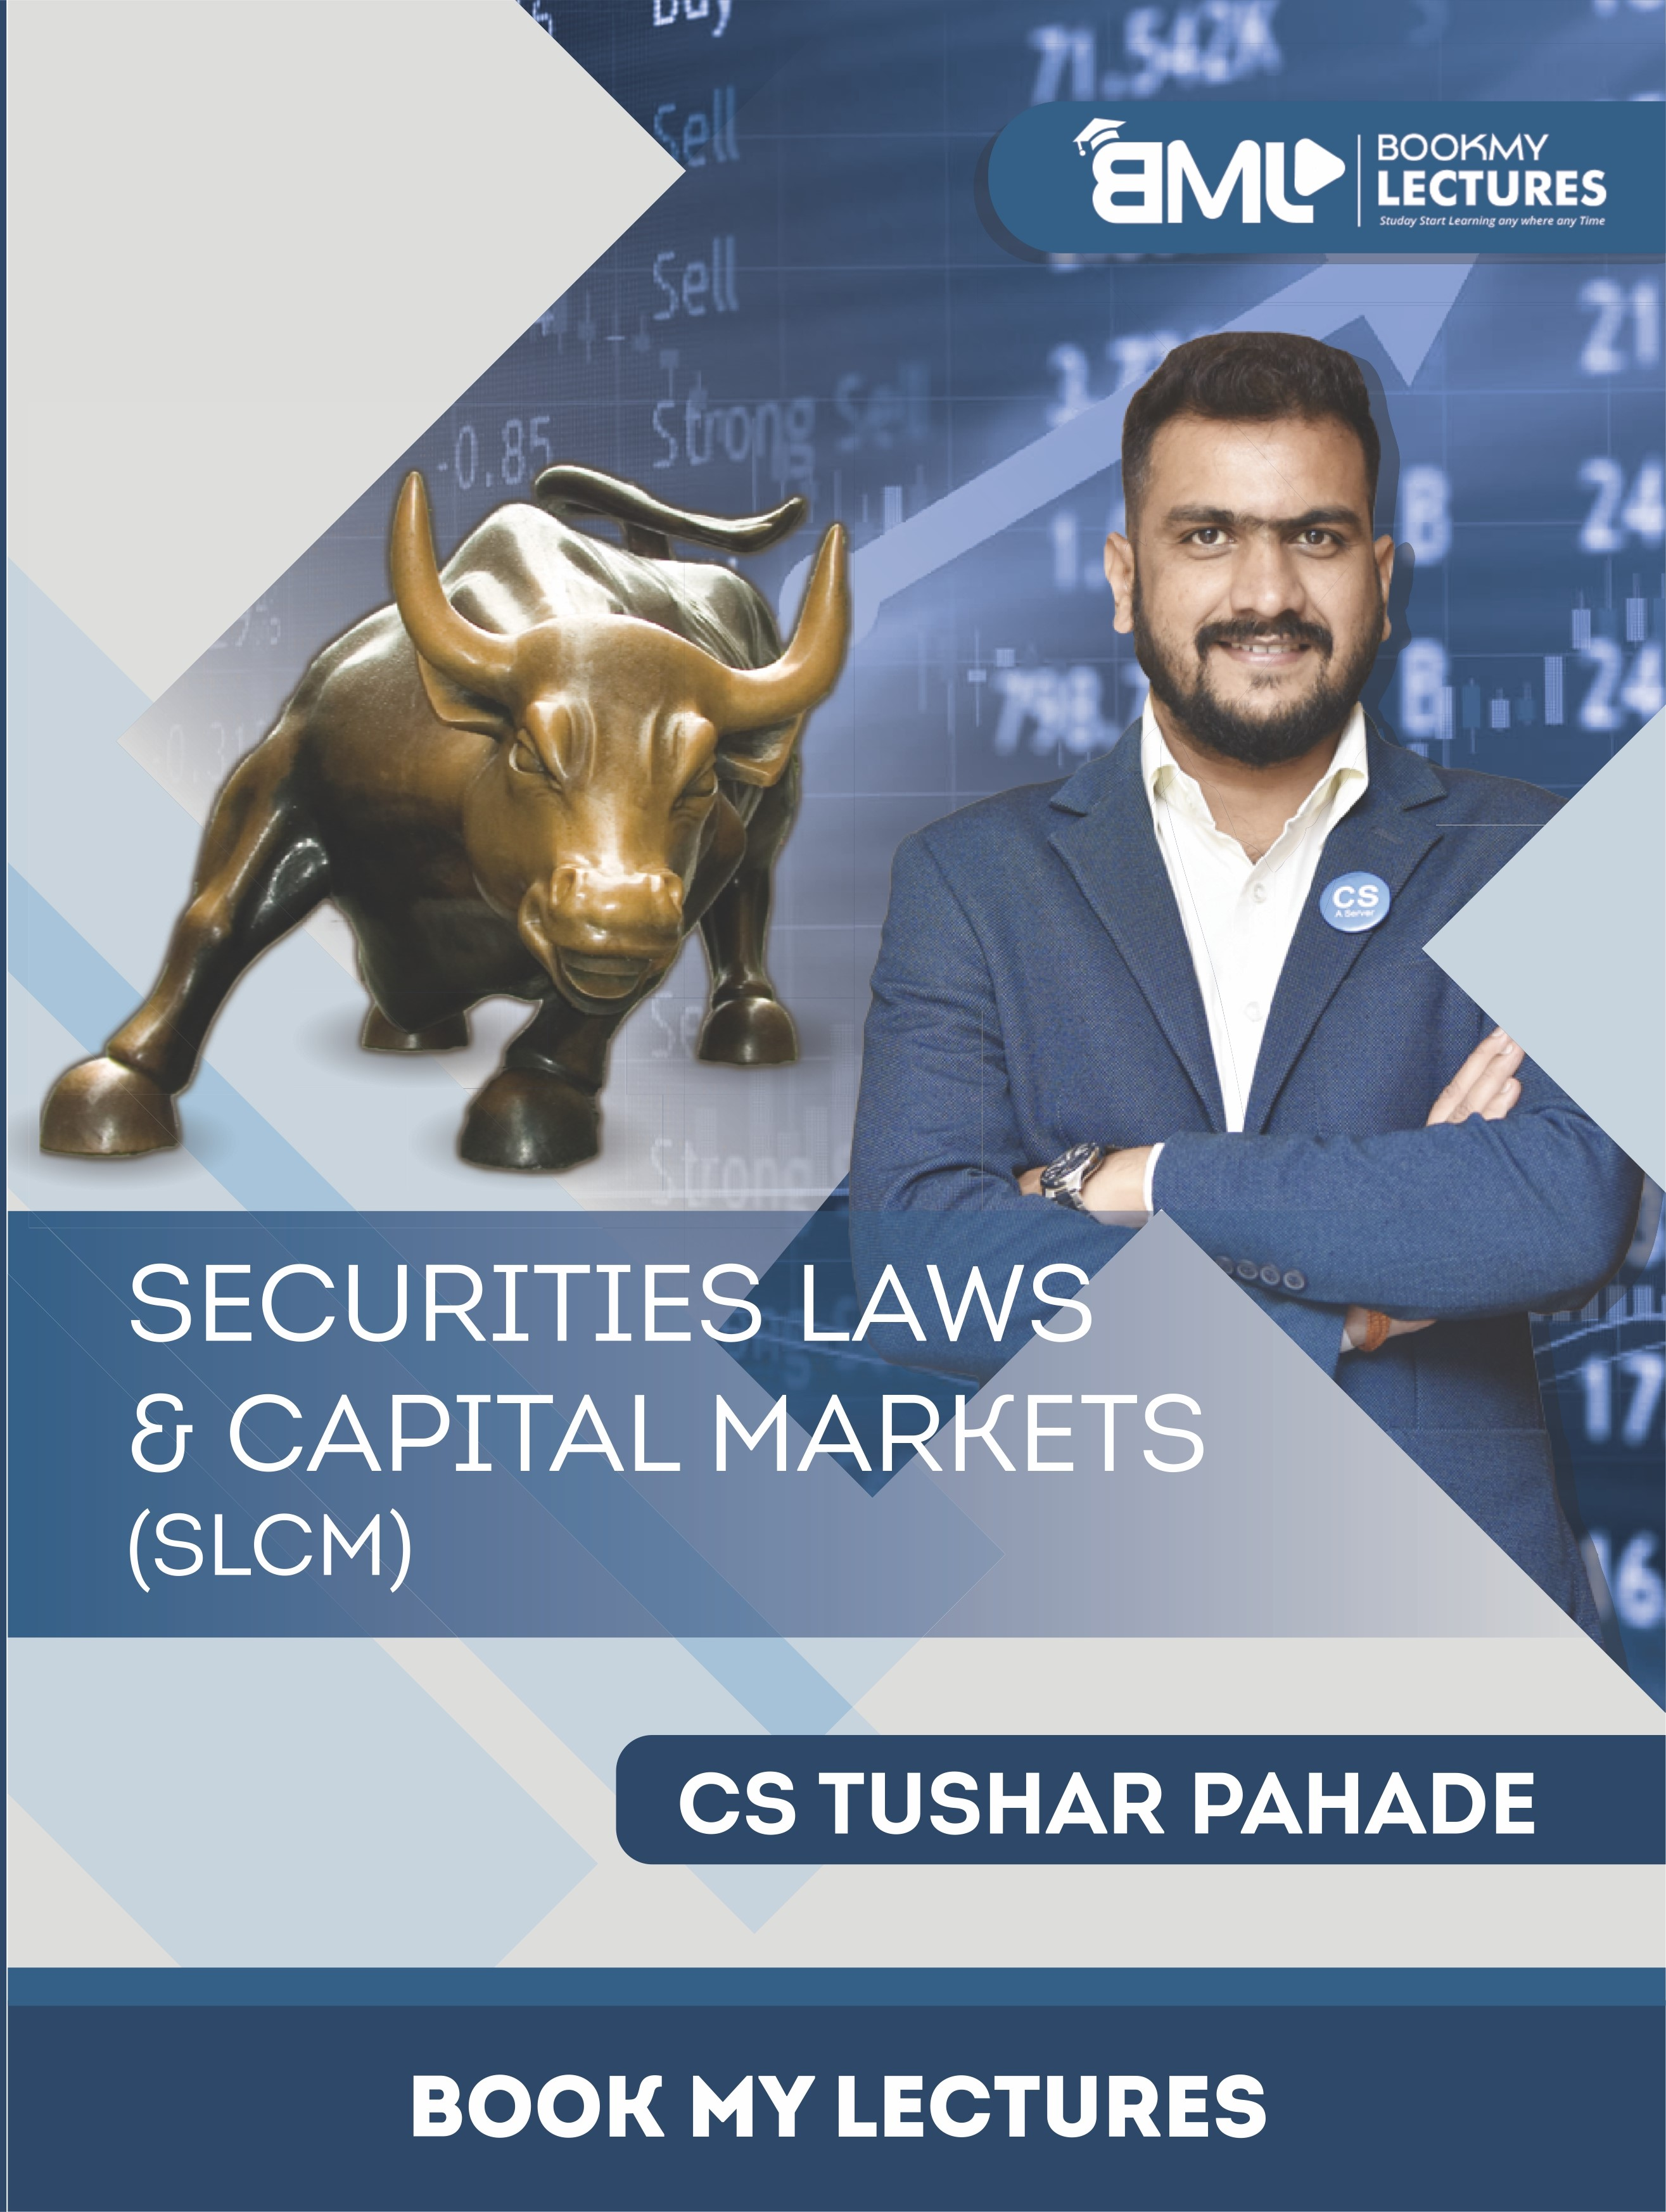 Securities Laws & Capital Markets (SLCM) video lectures by CS Tushar Pahade